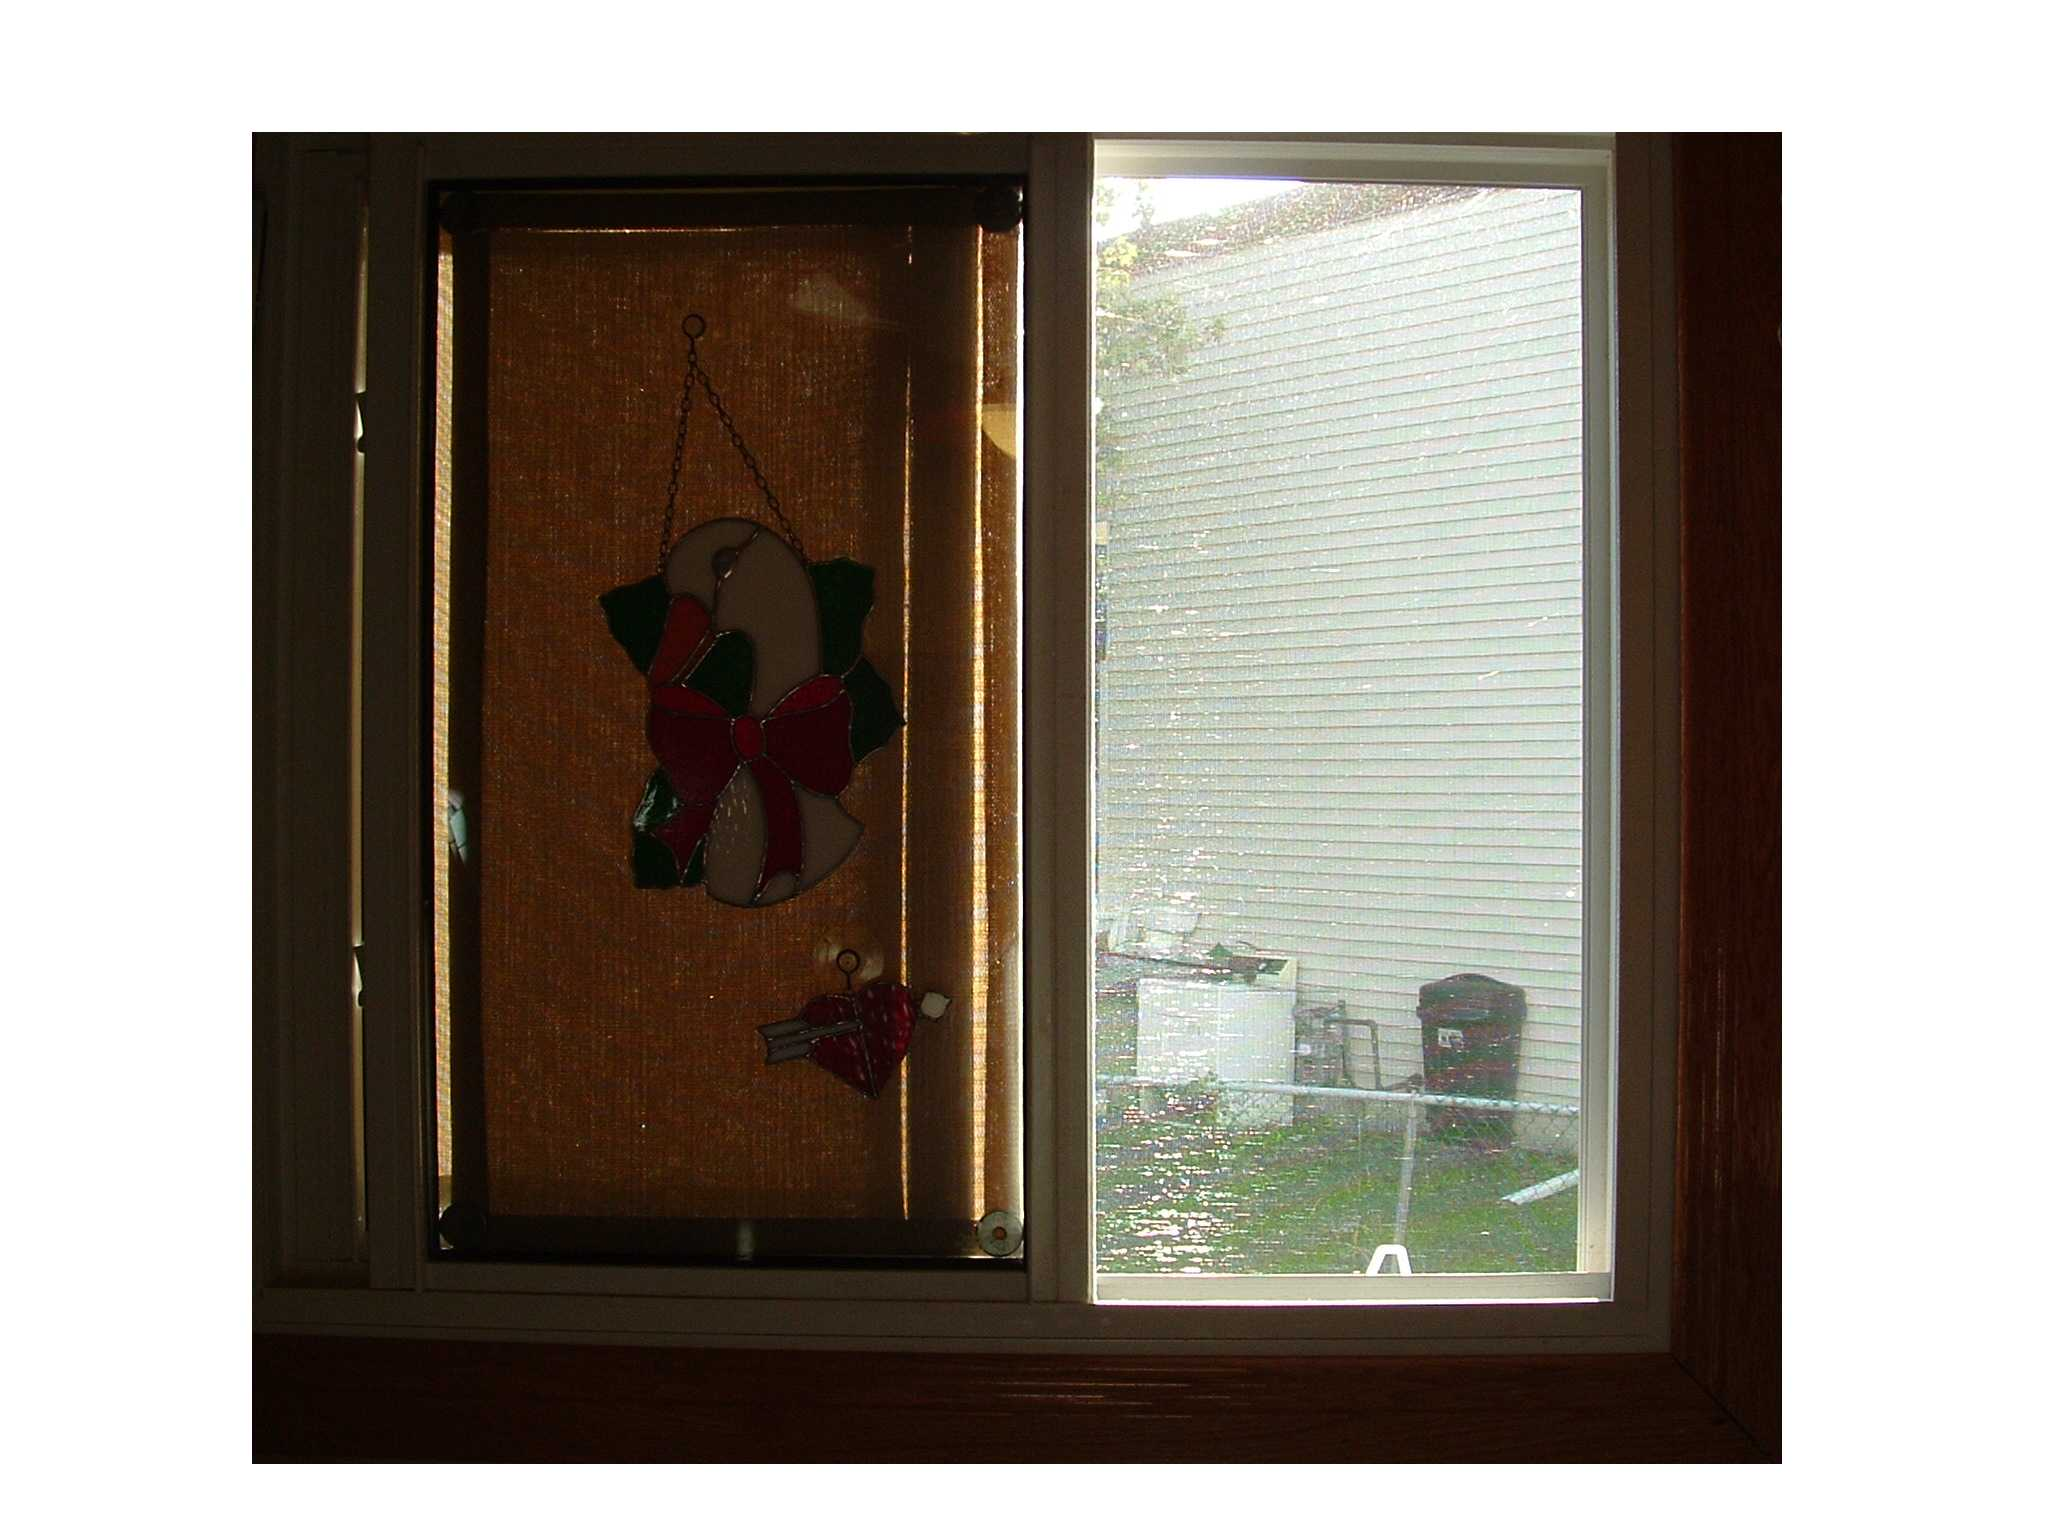 Window at night from inside - Sliding Window From Outside 219 Kb Unobtrusive To Neighbours Especially At Night